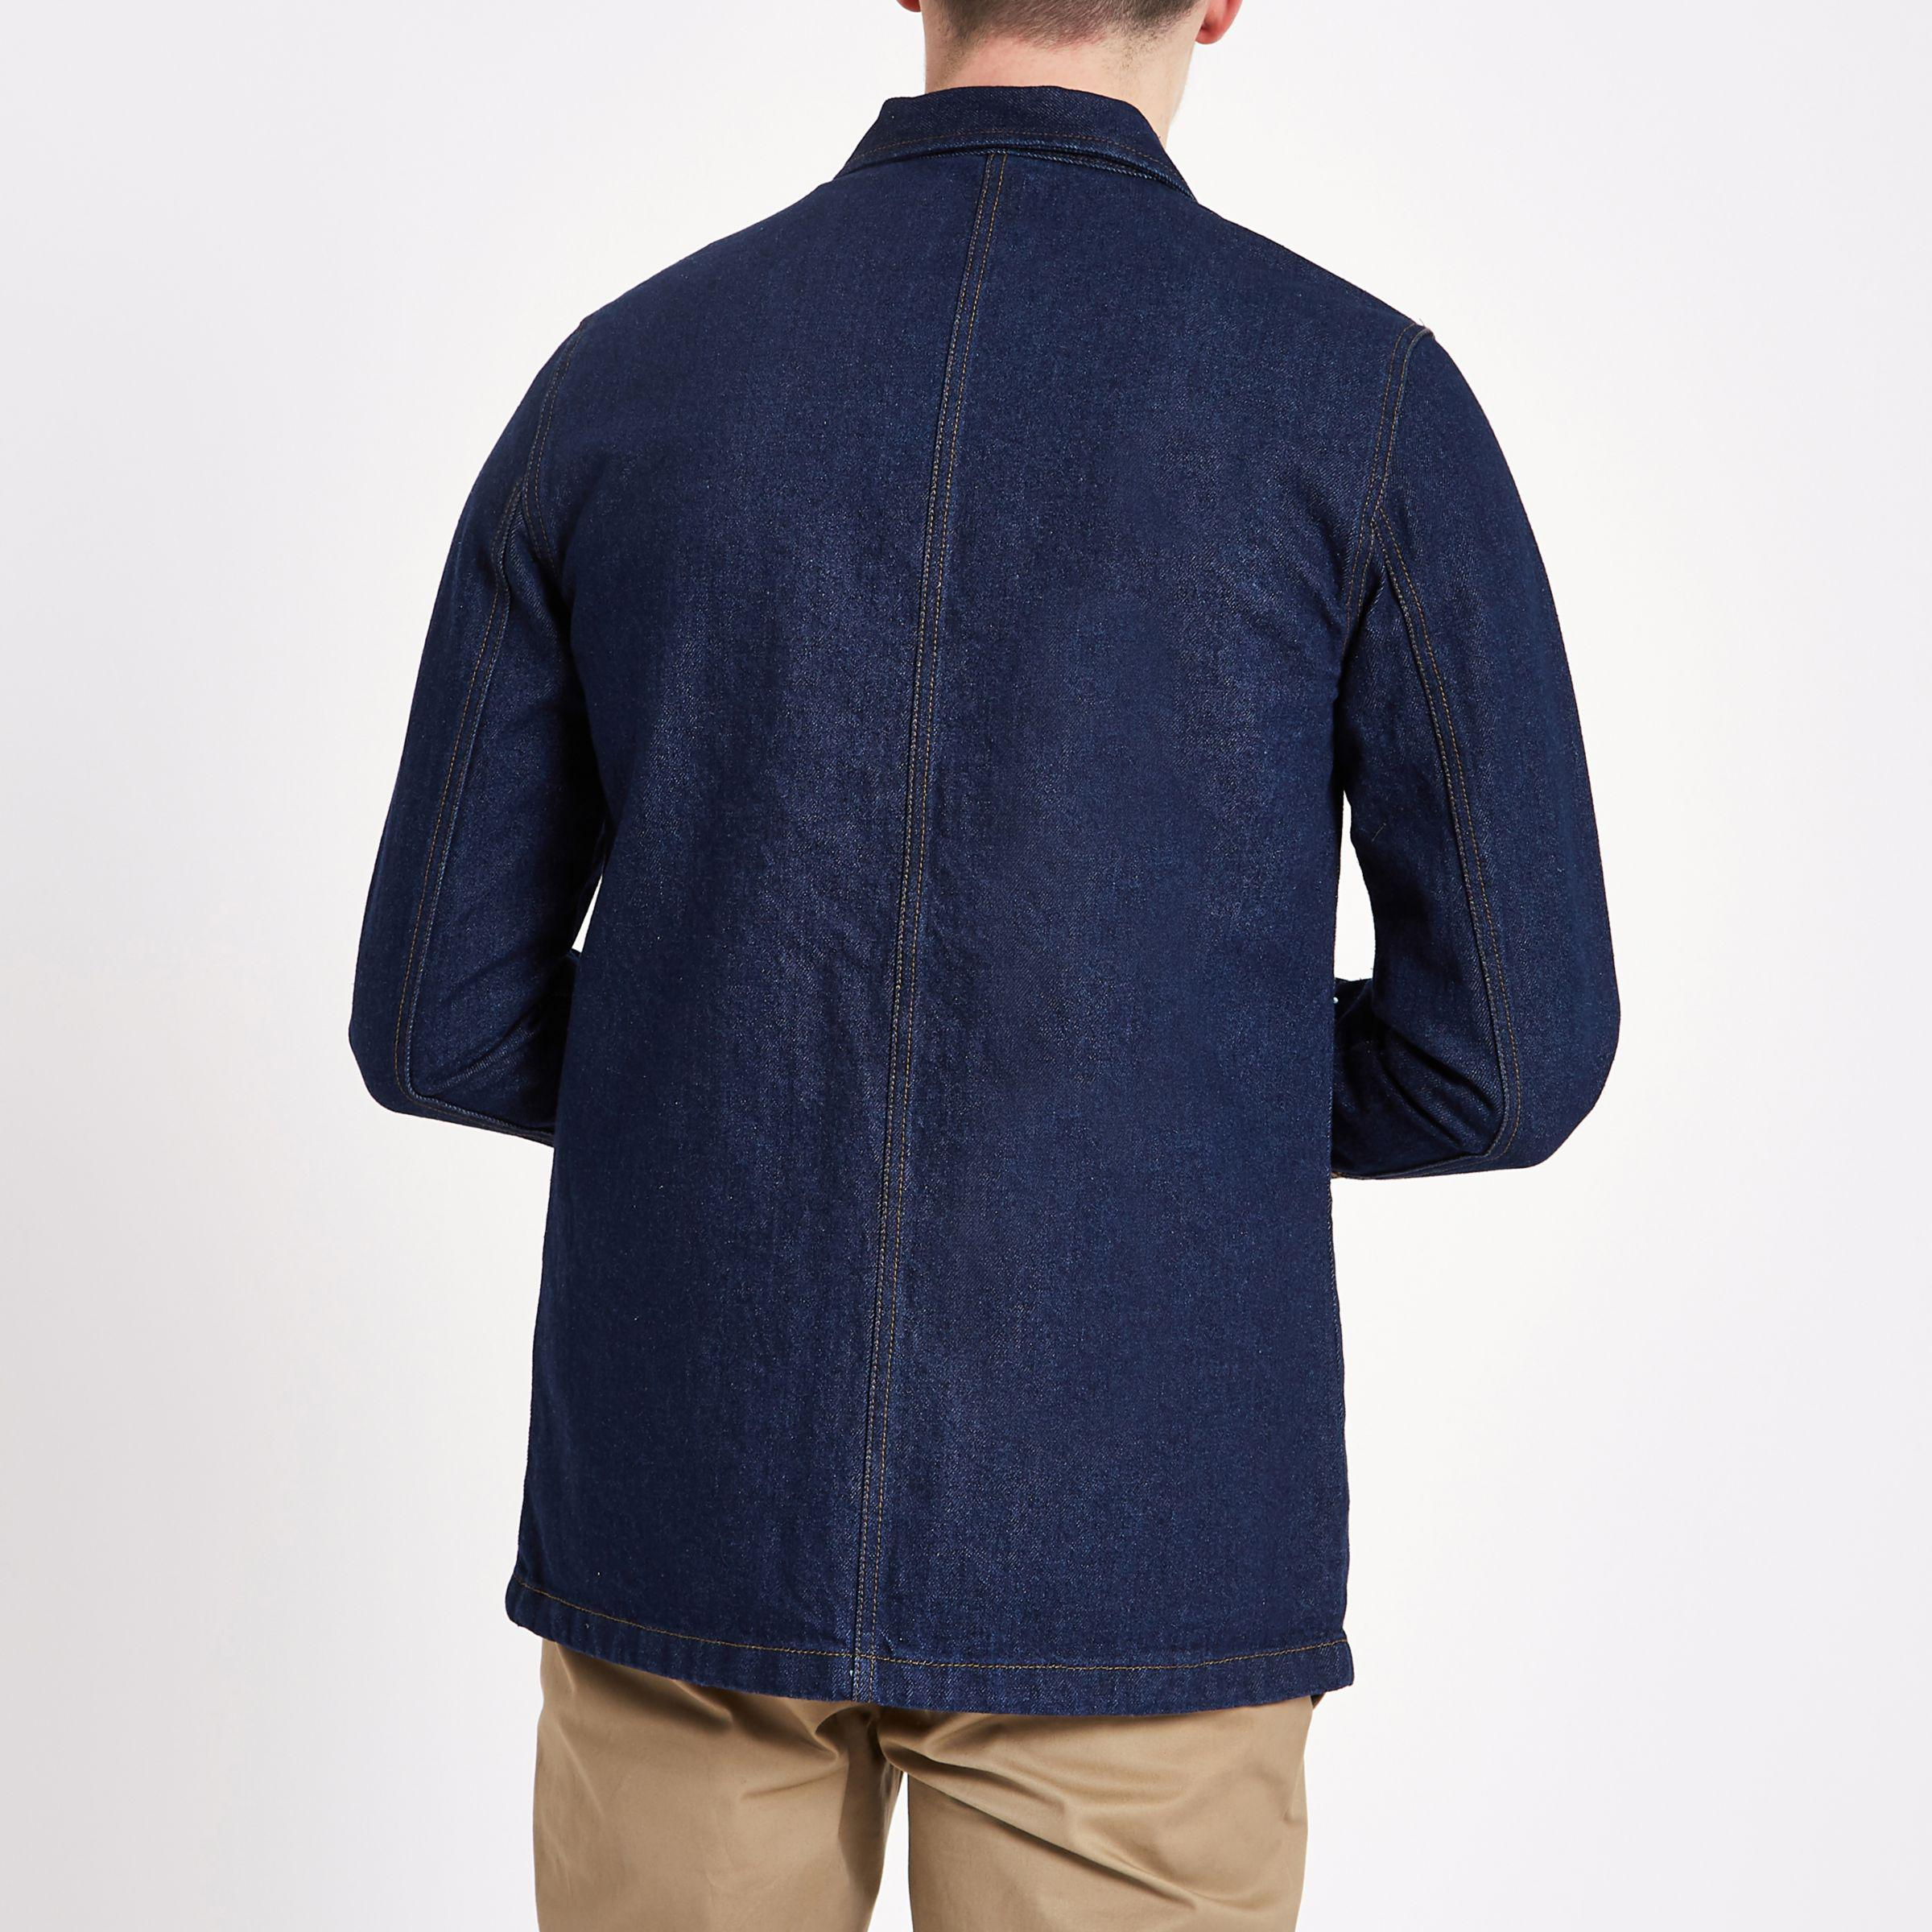 Discount 100% Original Buy Cheap How Much River Island Mens Only and Sons dark Blue denim overshirt Only & Sons Cheap Sale Recommend Discount Low Shipping Fee Extremely CRKqQ6